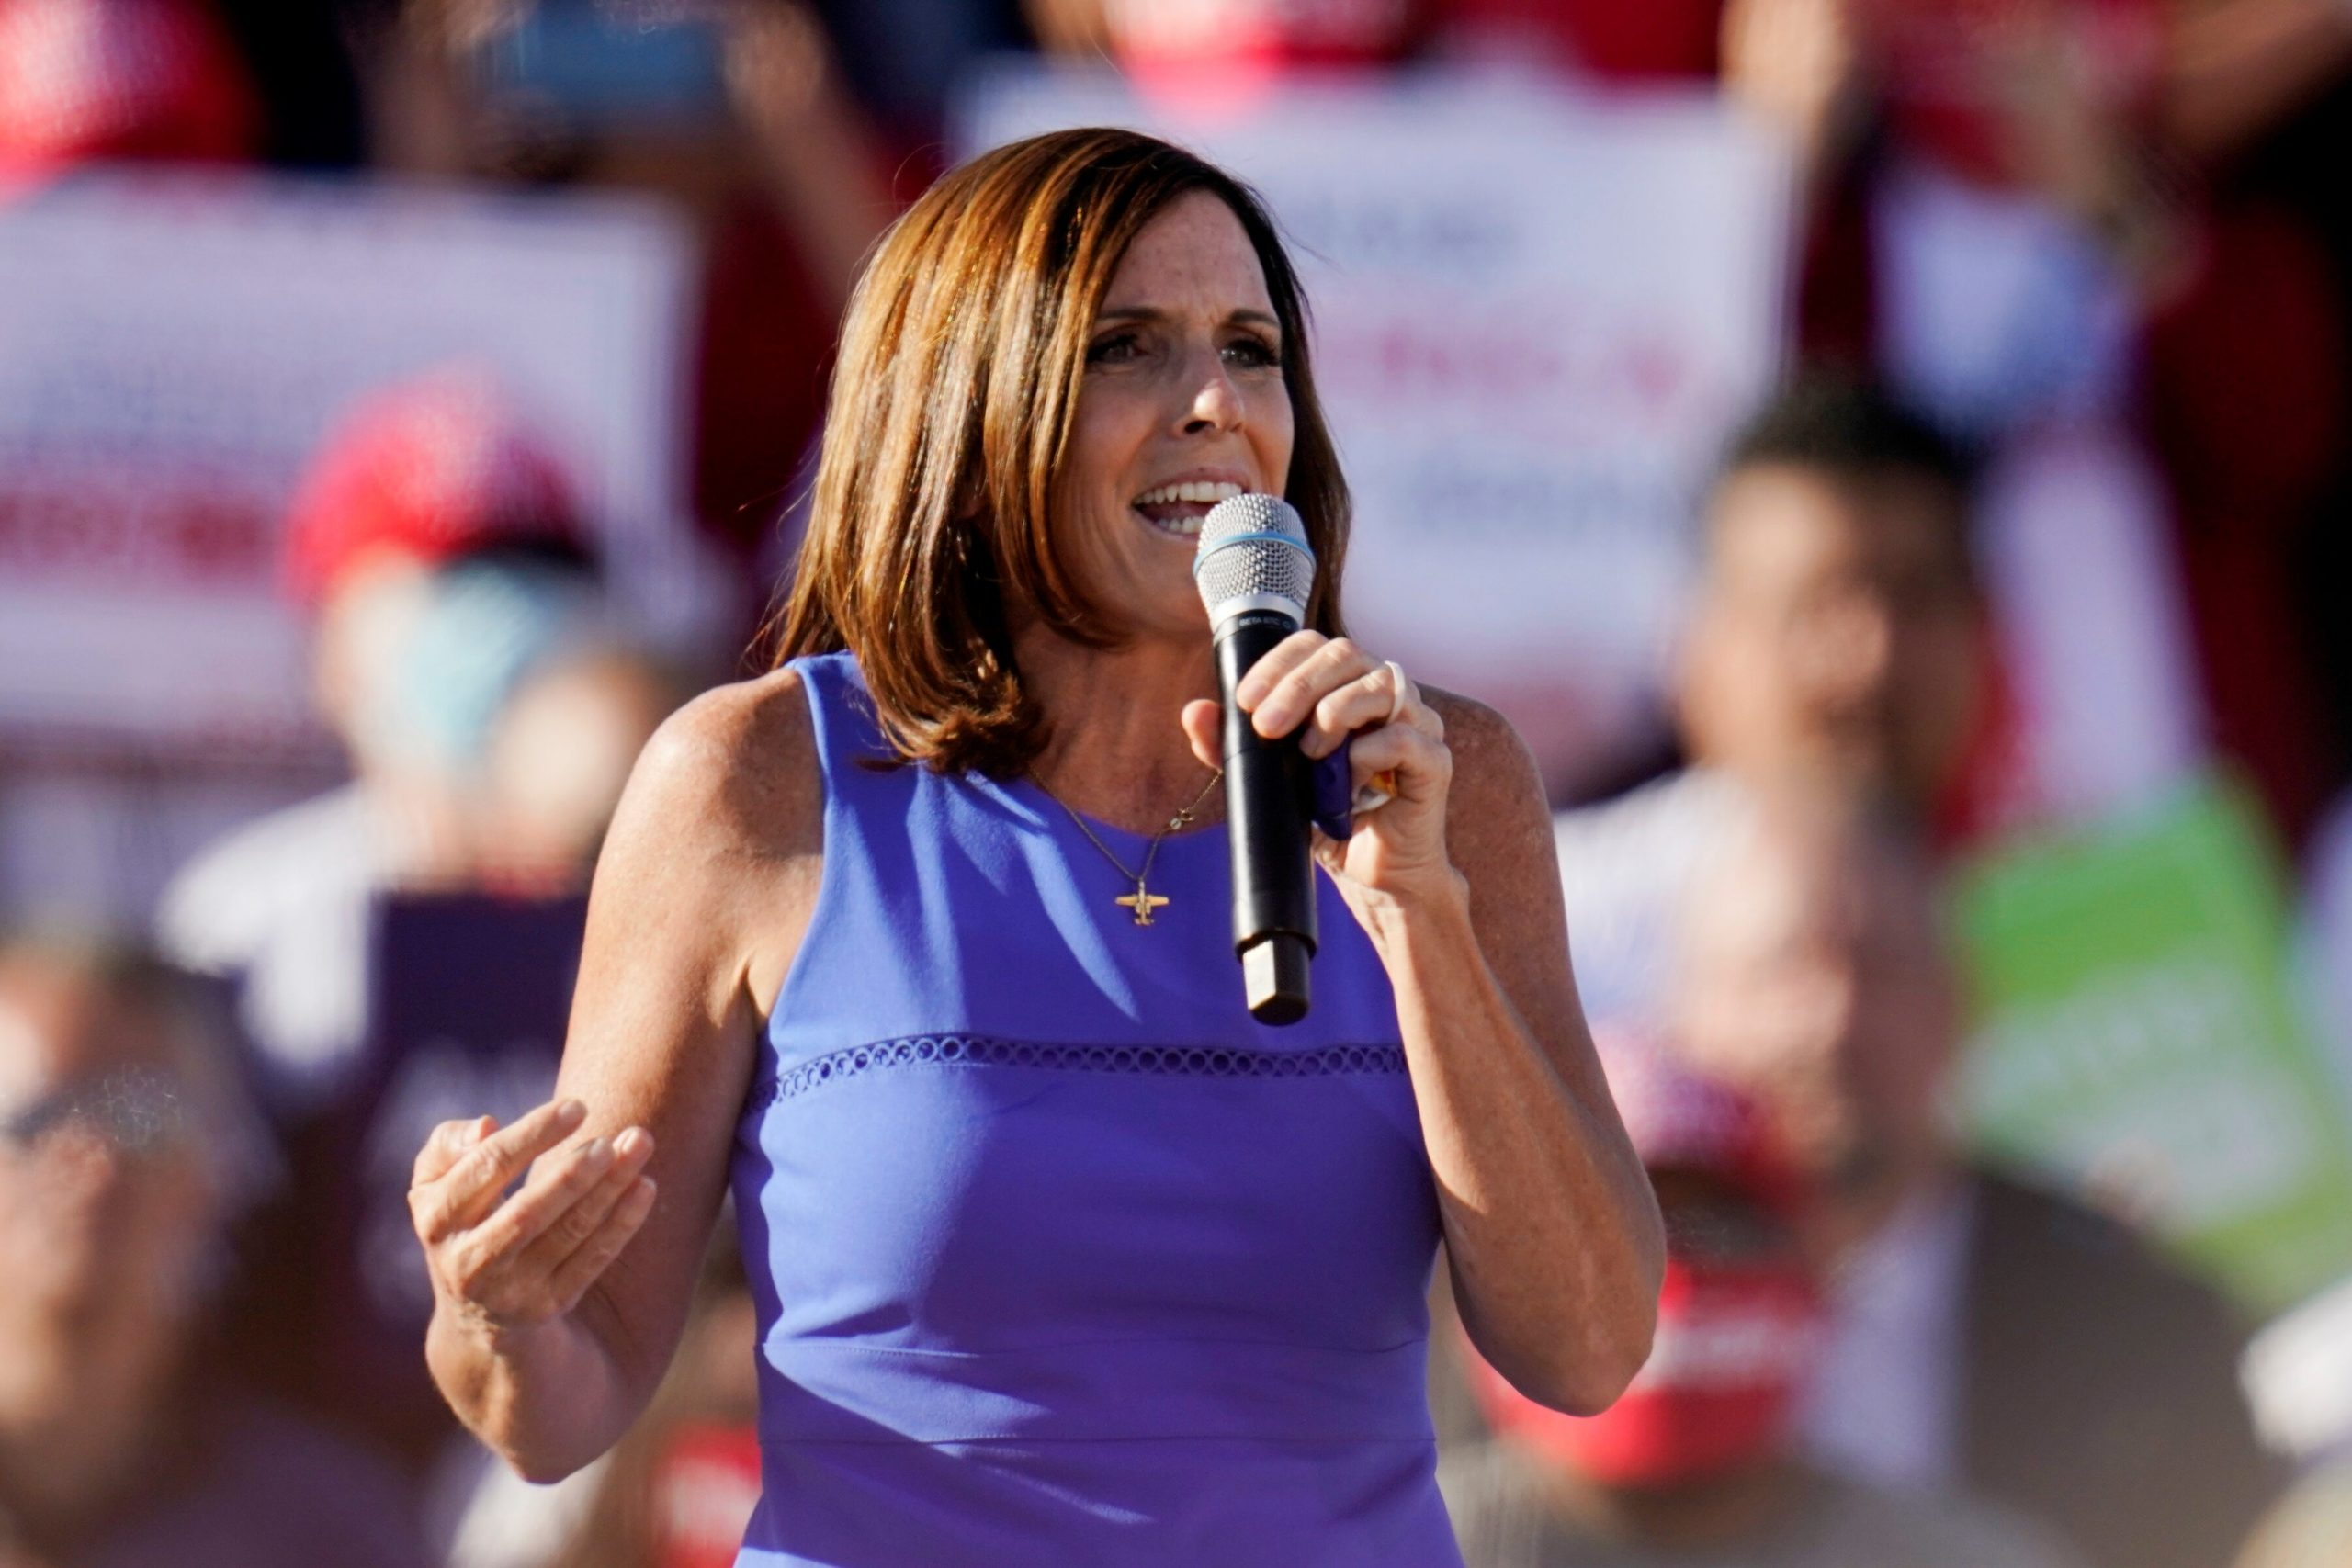 Arizona Sen. McSally farewell photo session with staff broken up because of lack of masks